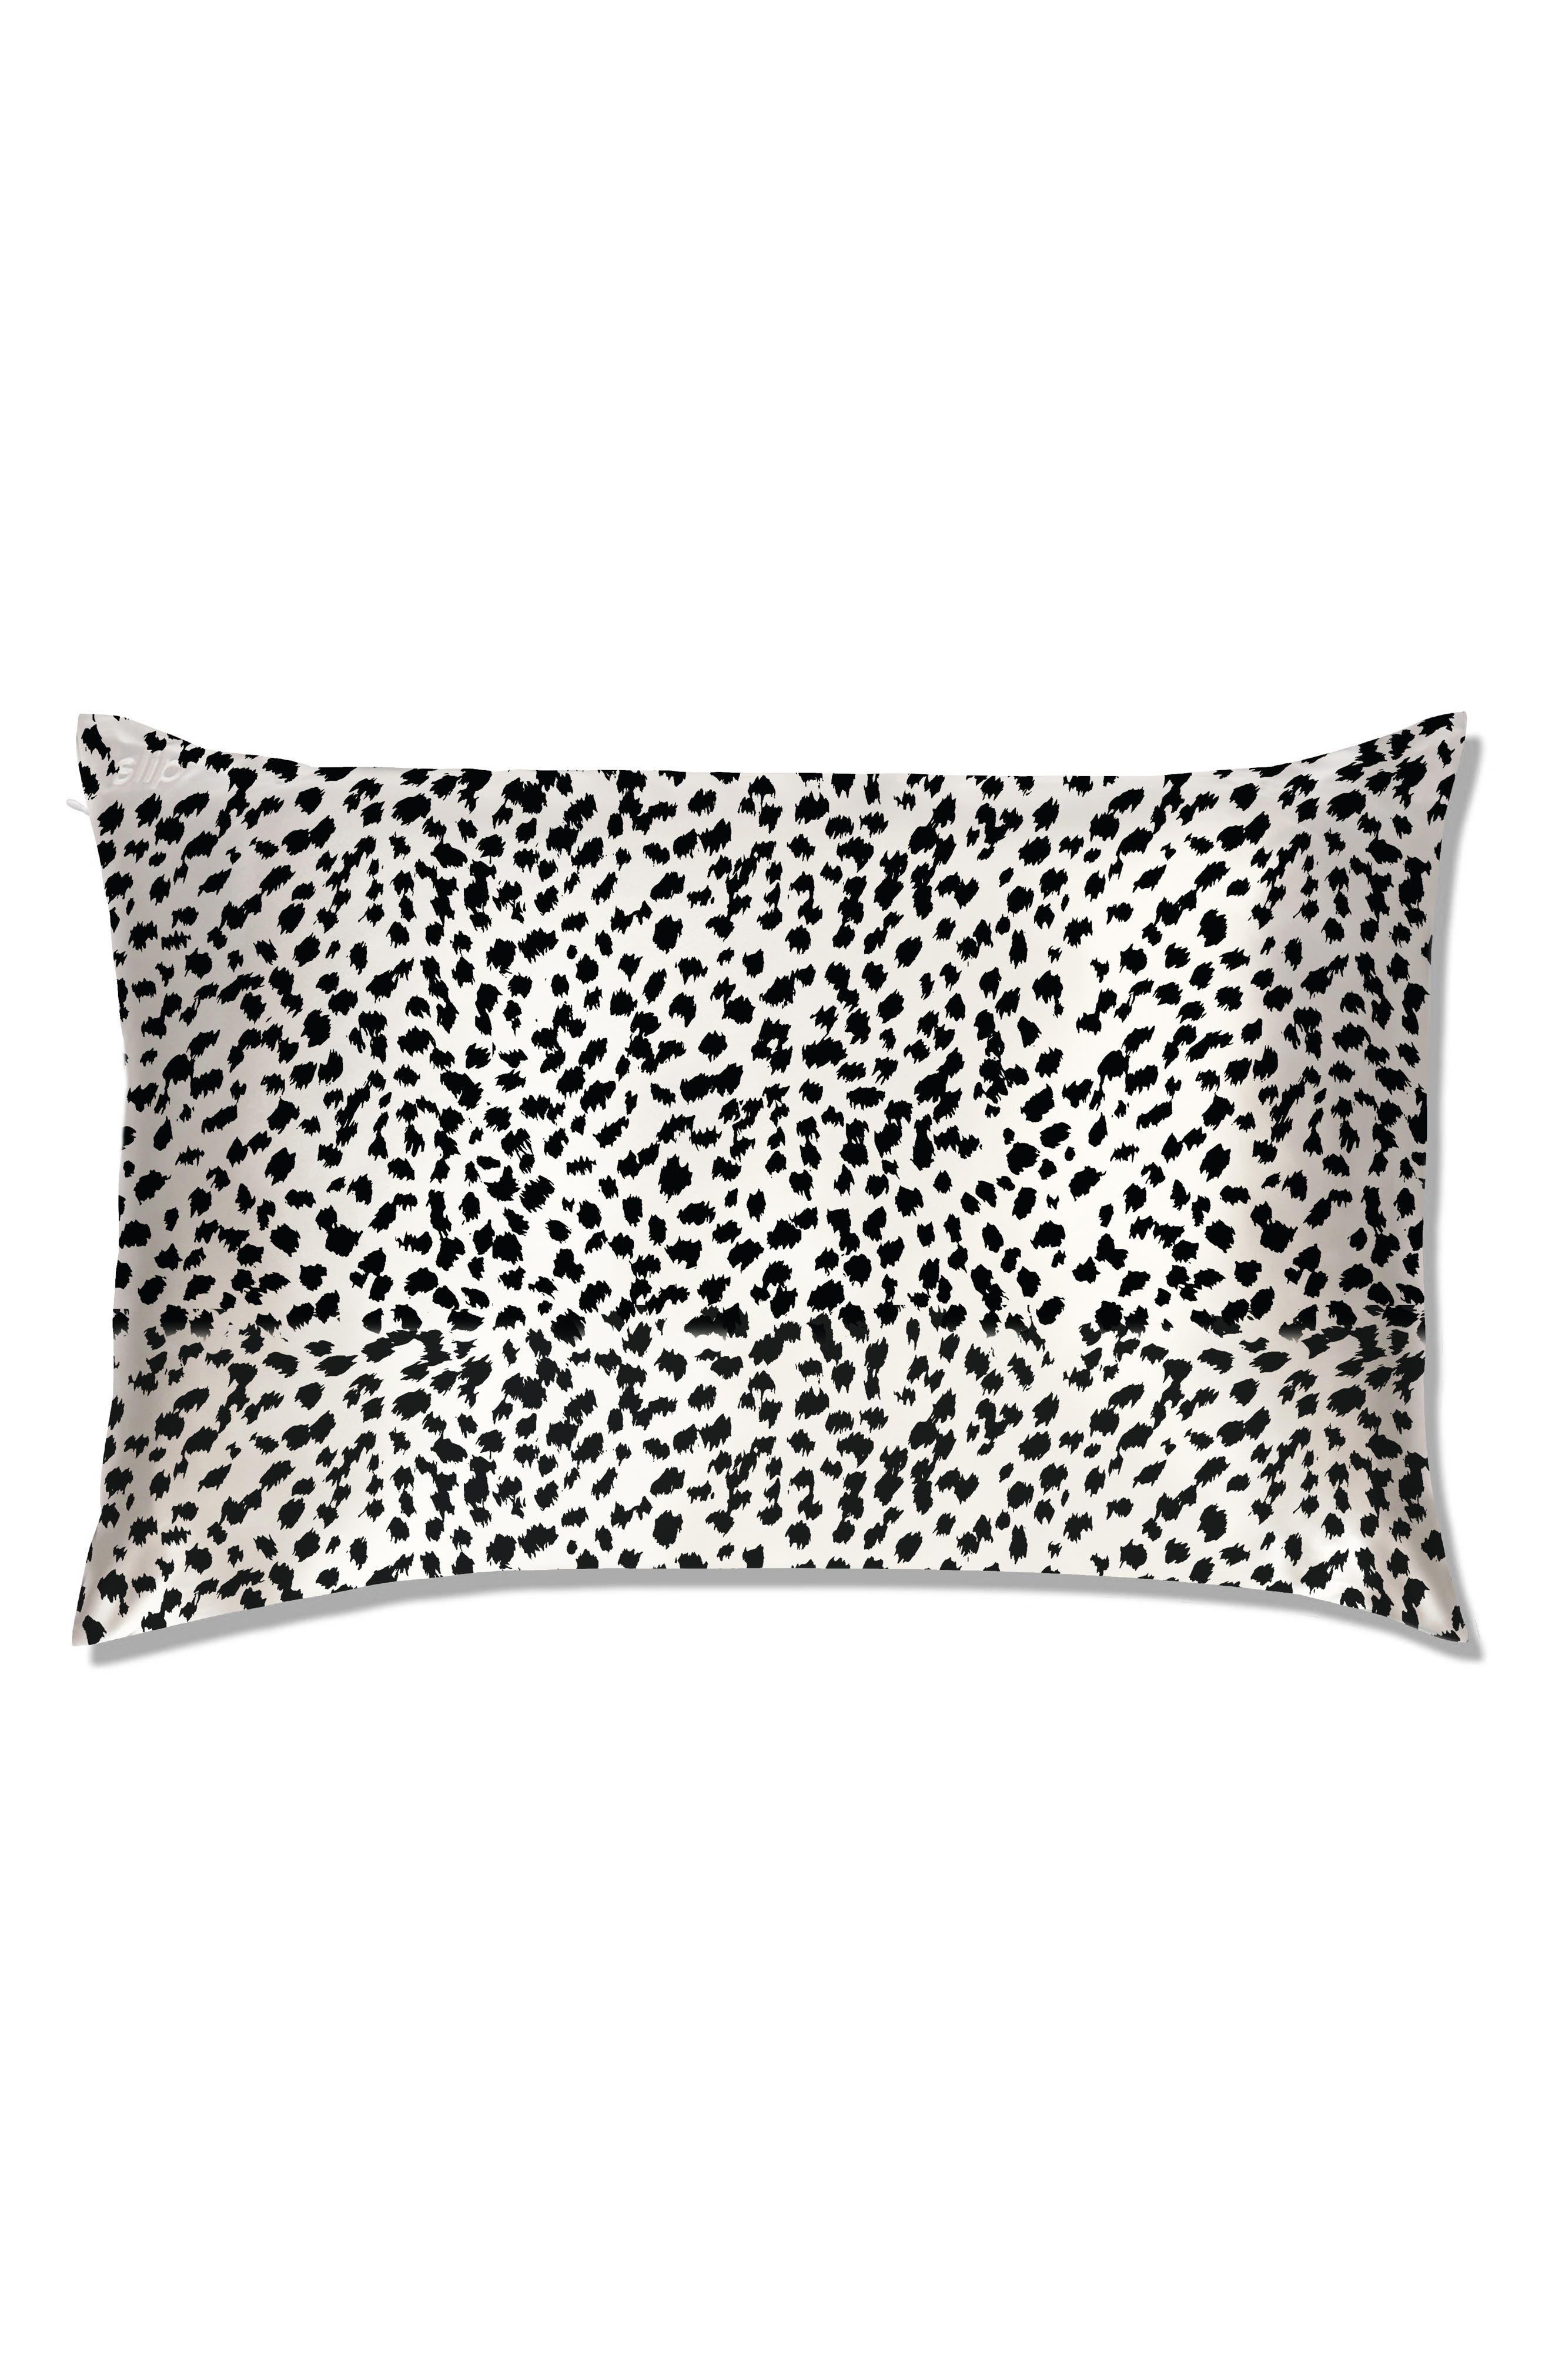 slip<sup>™</sup> for beauty sleep<sup>™</sup> Black & White Leopard Pillowcase,                         Main,                         color, NO COLOR